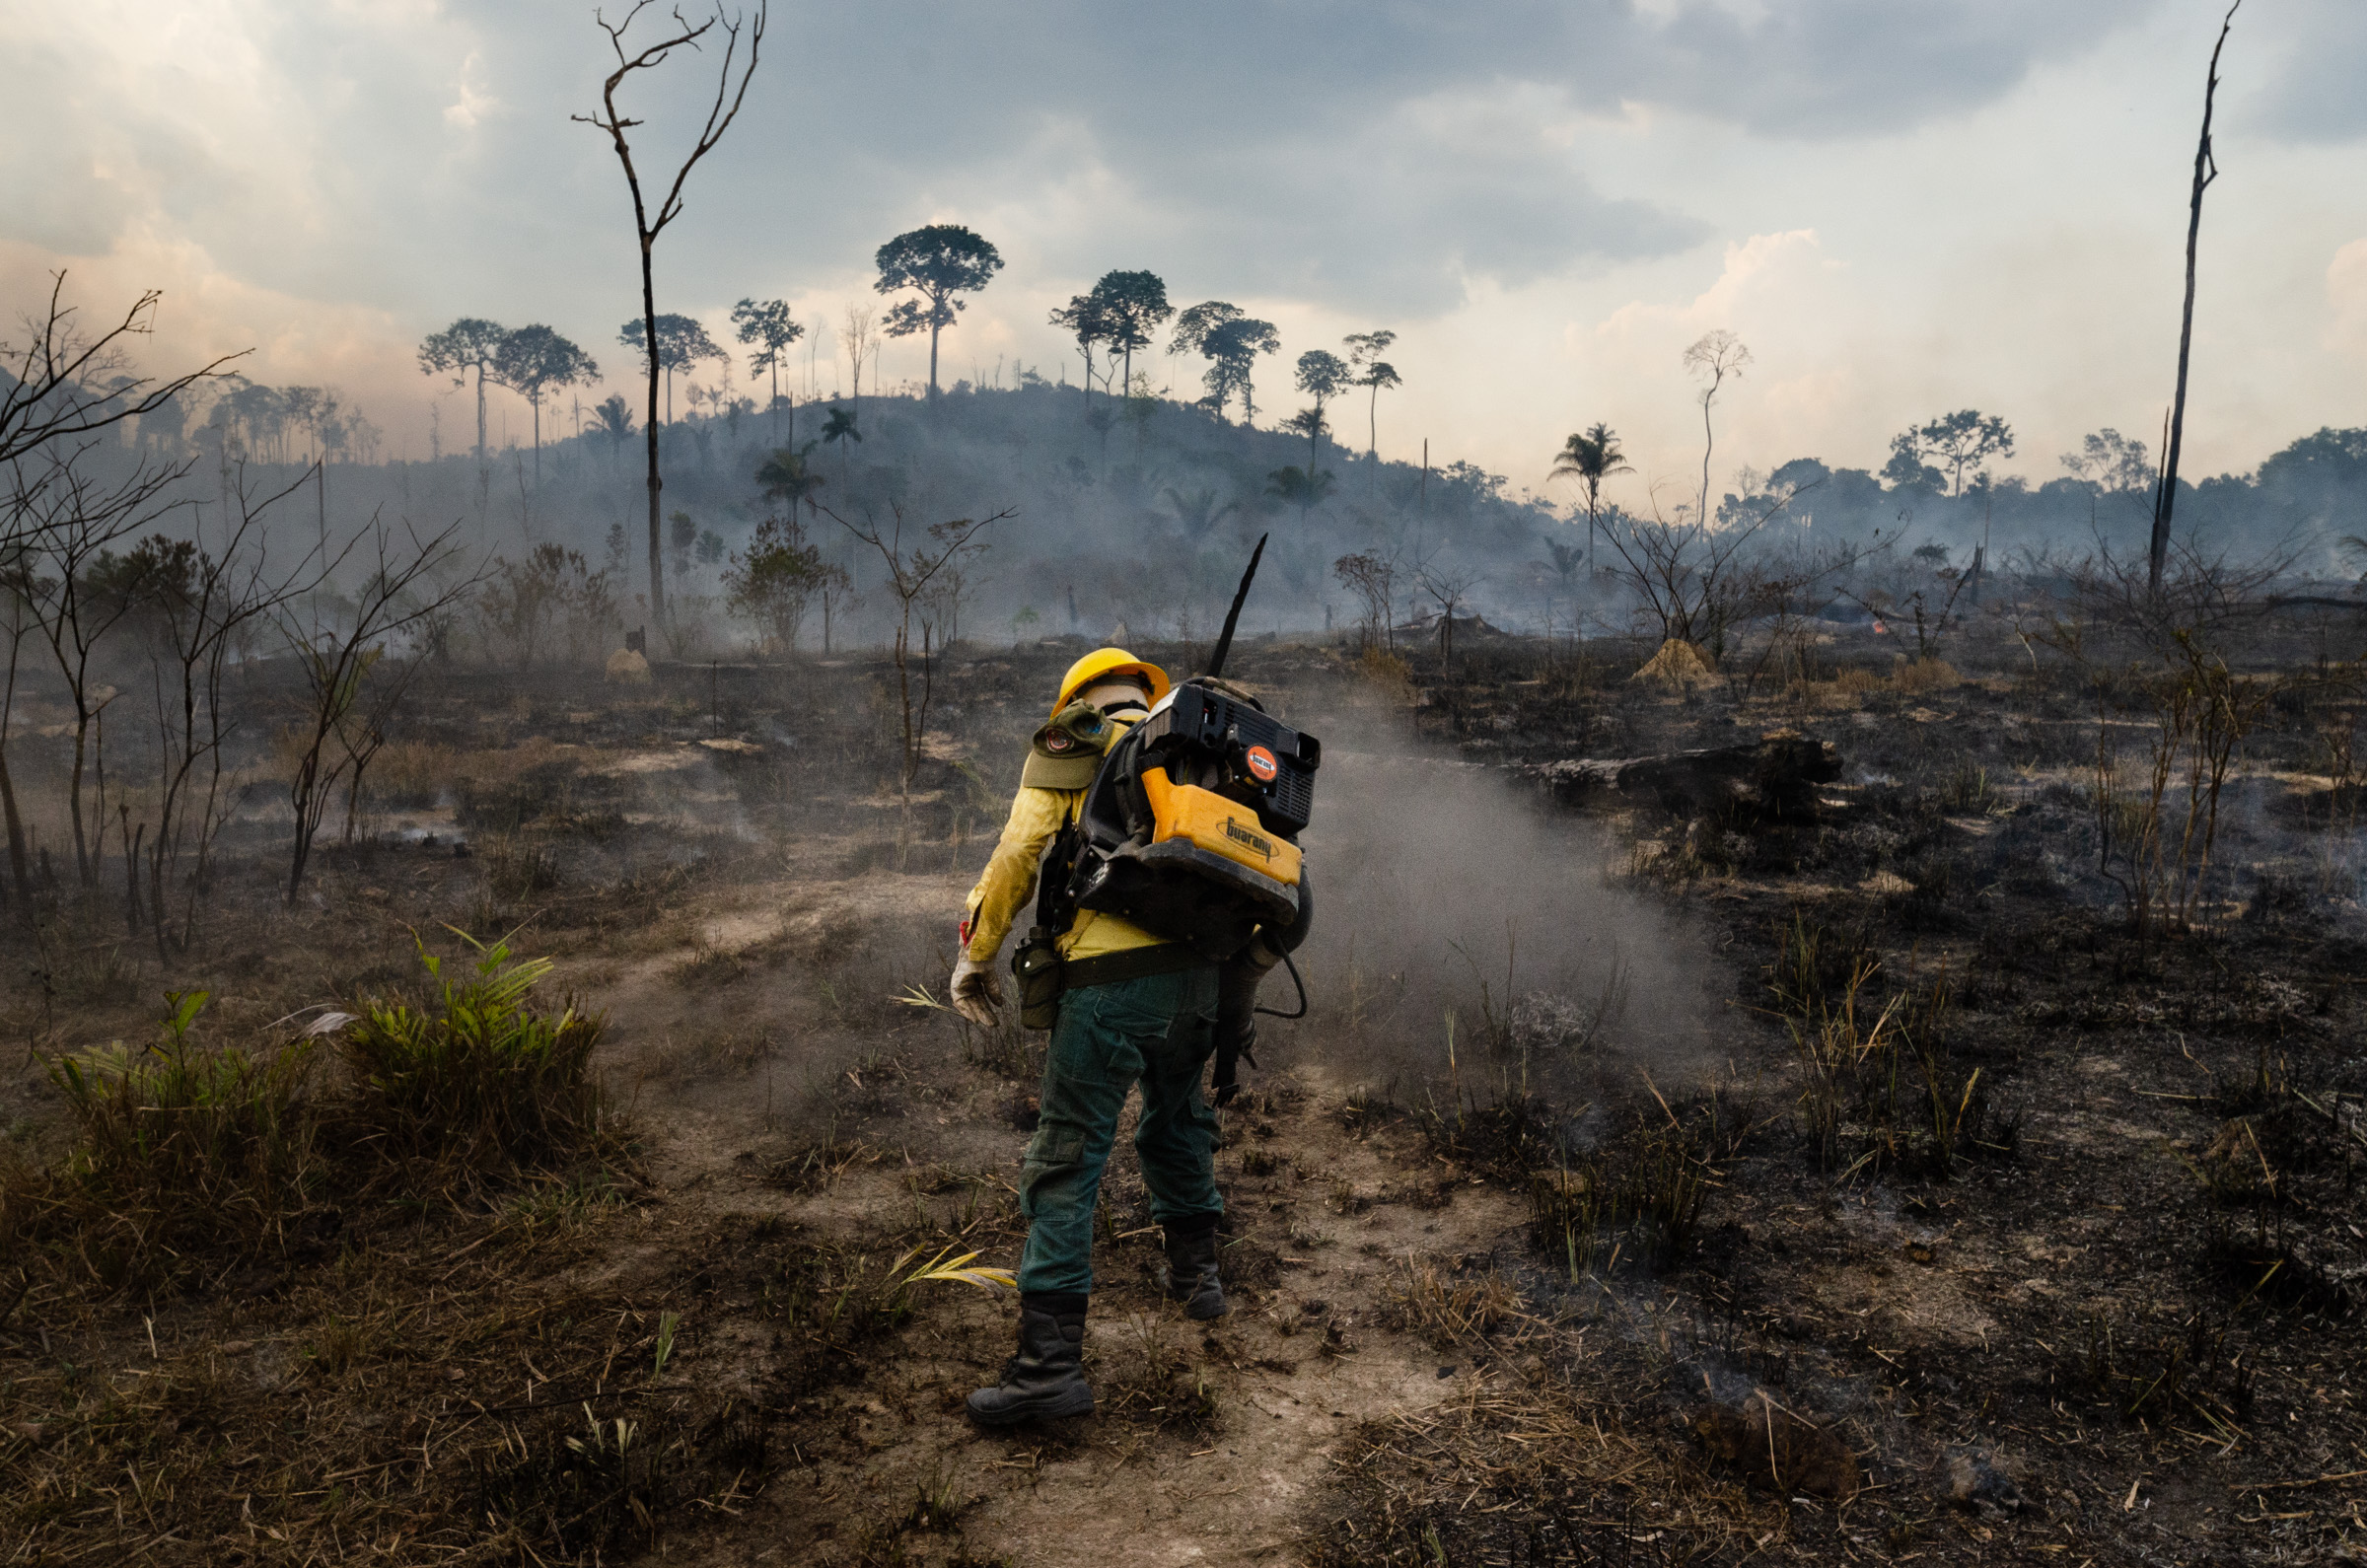 Members of the IBAMA forest fire brigade (named Prevfogo) fight burning in the Amazon area of rural settlement PDS Nova Fronteira, in the city of Novo Progresso, Para state, northern Brazil, on September 3, 2019. Since the end of August Prevfogo has been acting with the assistance of Brazilian Army military. Bolsonaro government budget cuts since January 2019 have severely affected brigades, which have been reduced in critical regions such as the Amazon. (Photo by Gustavo Basso/NurPhoto via Getty Images)